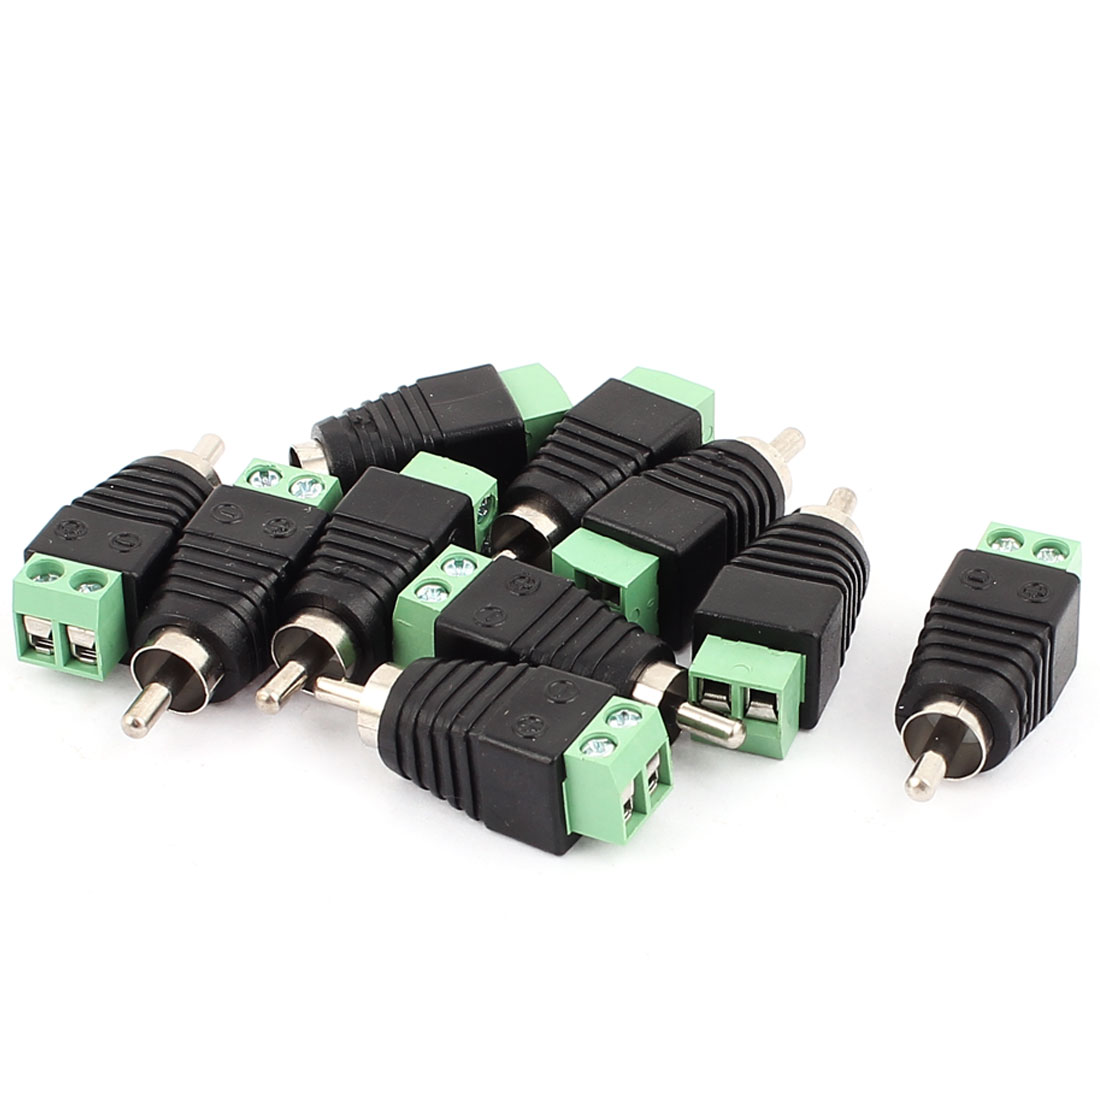 Unique Bargains 10 Pcs Speaker RCA Wire to AV Phono Male RCA Connector Jack Adapter